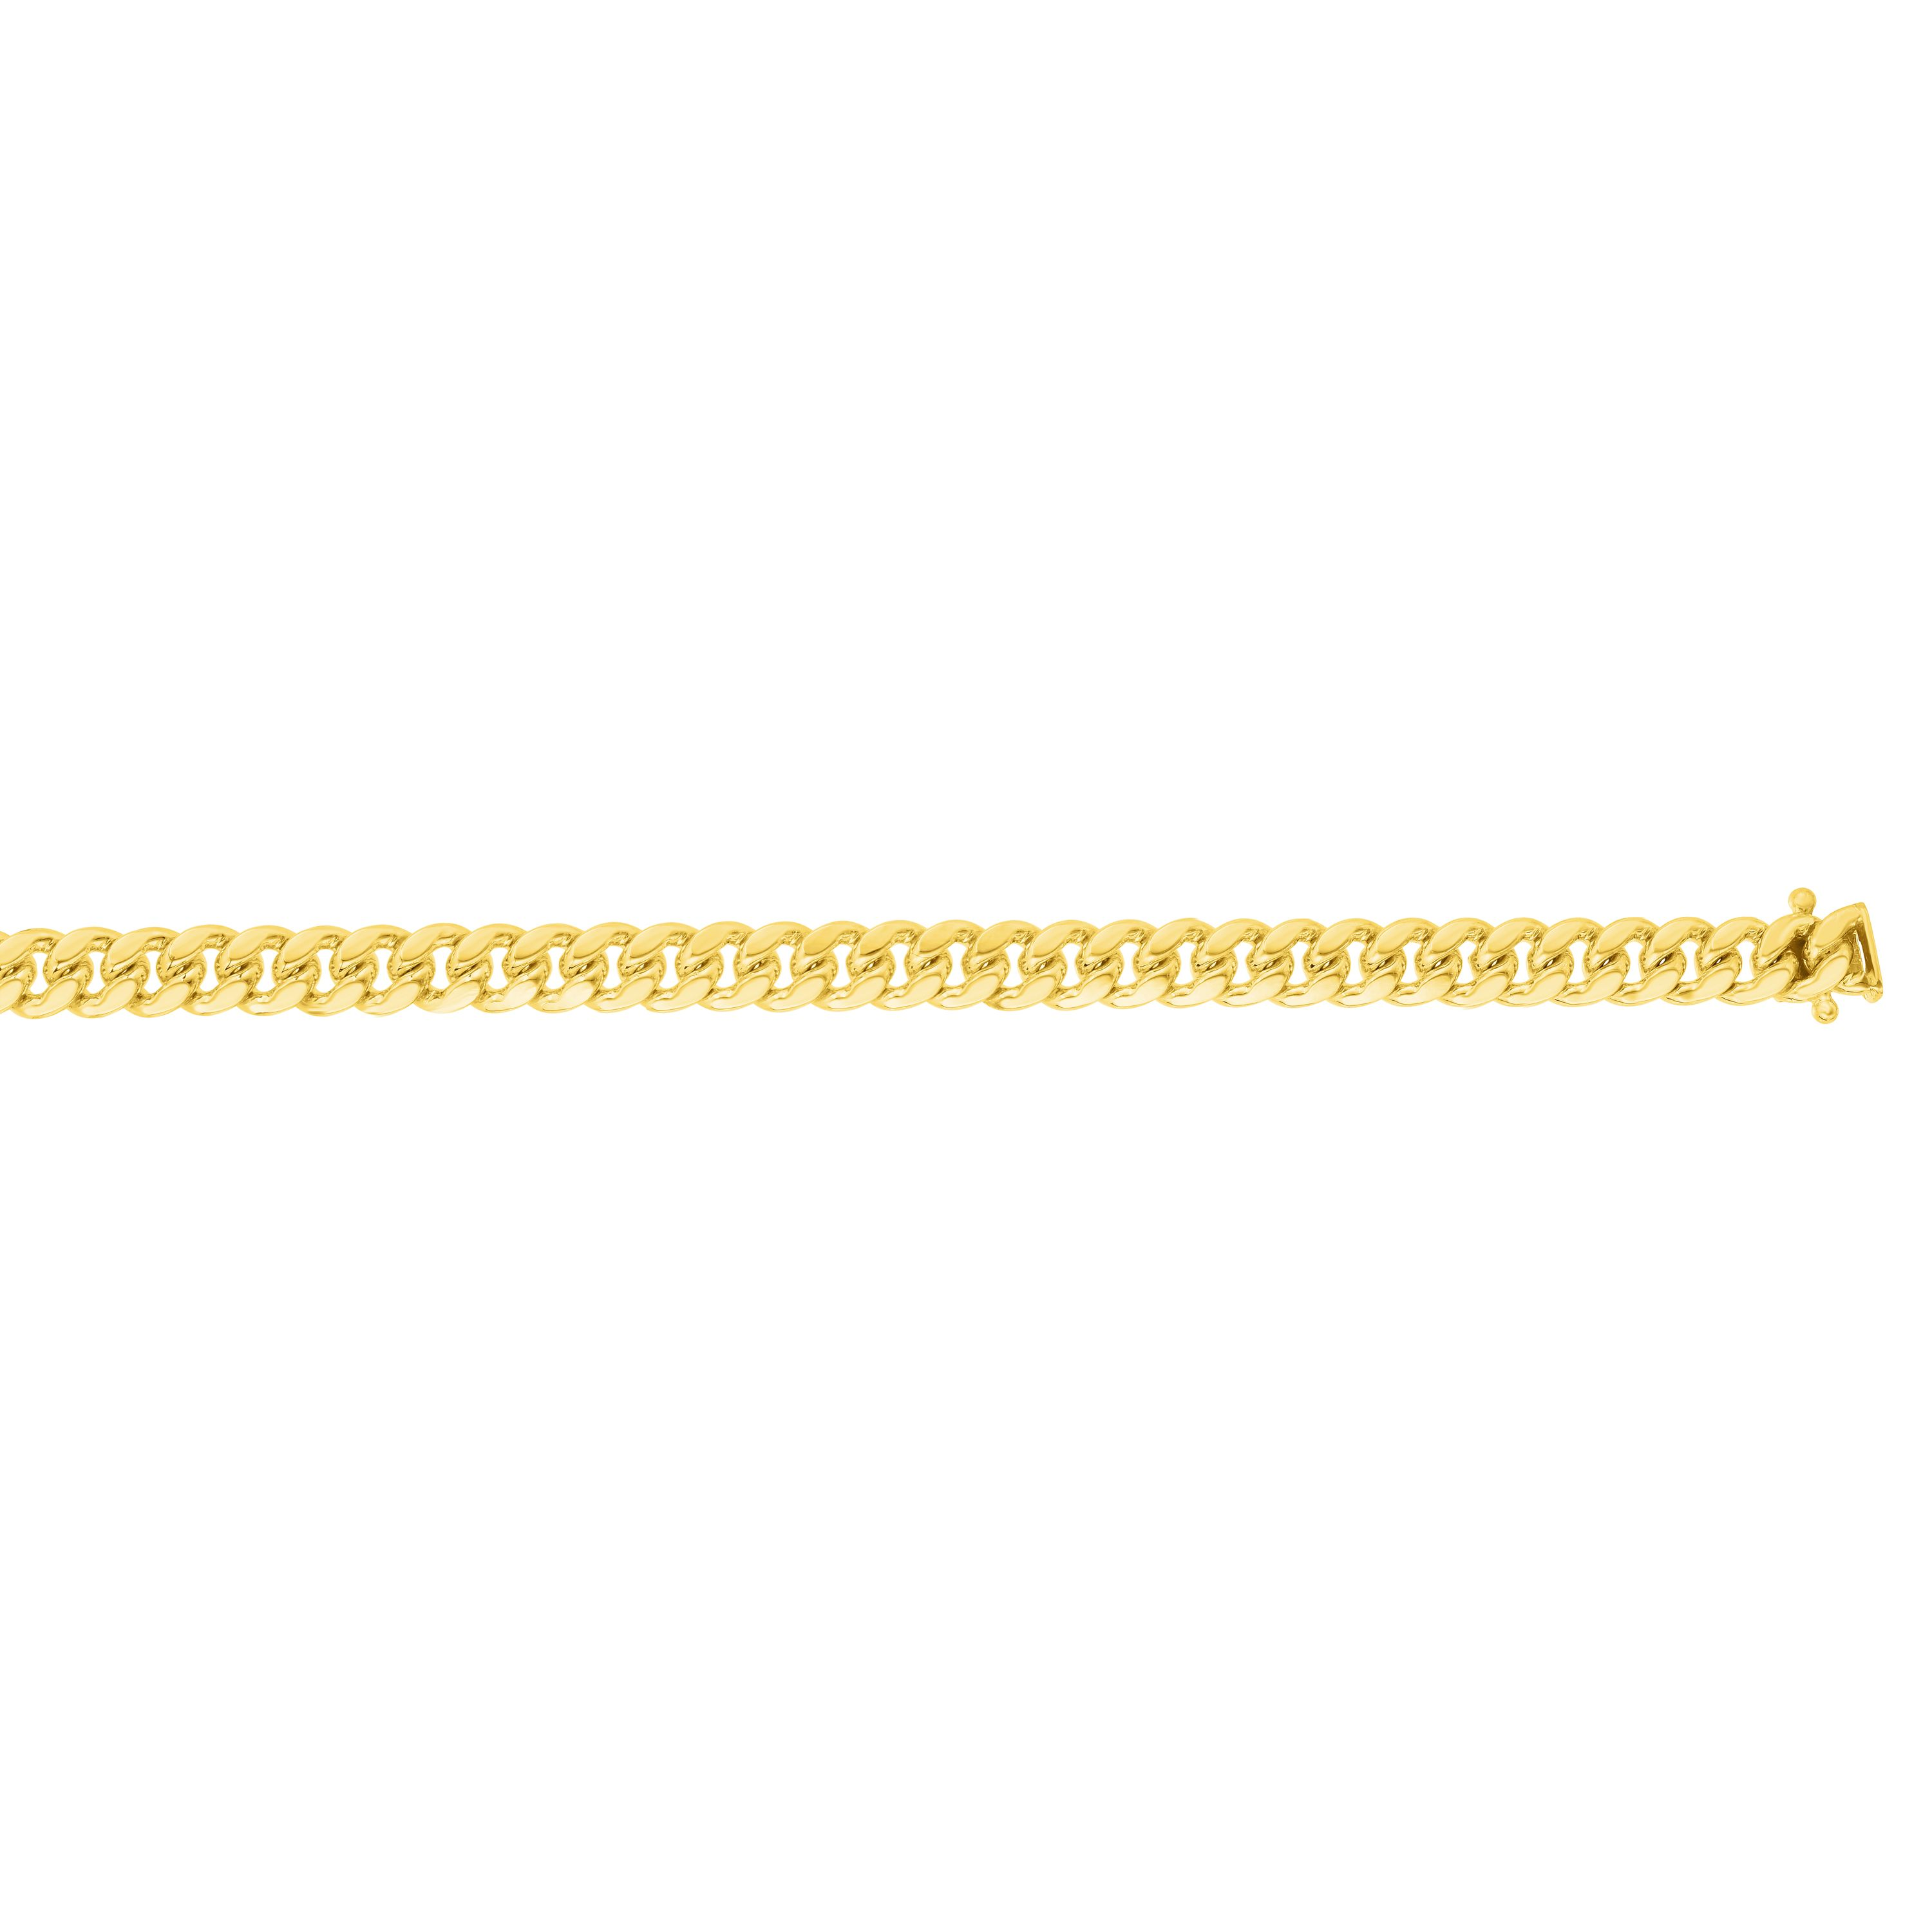 14kt Gold 8.75 inches Yellow Finish 9.2mm Polished New Miami Cuban Bracelet with Box Clasp